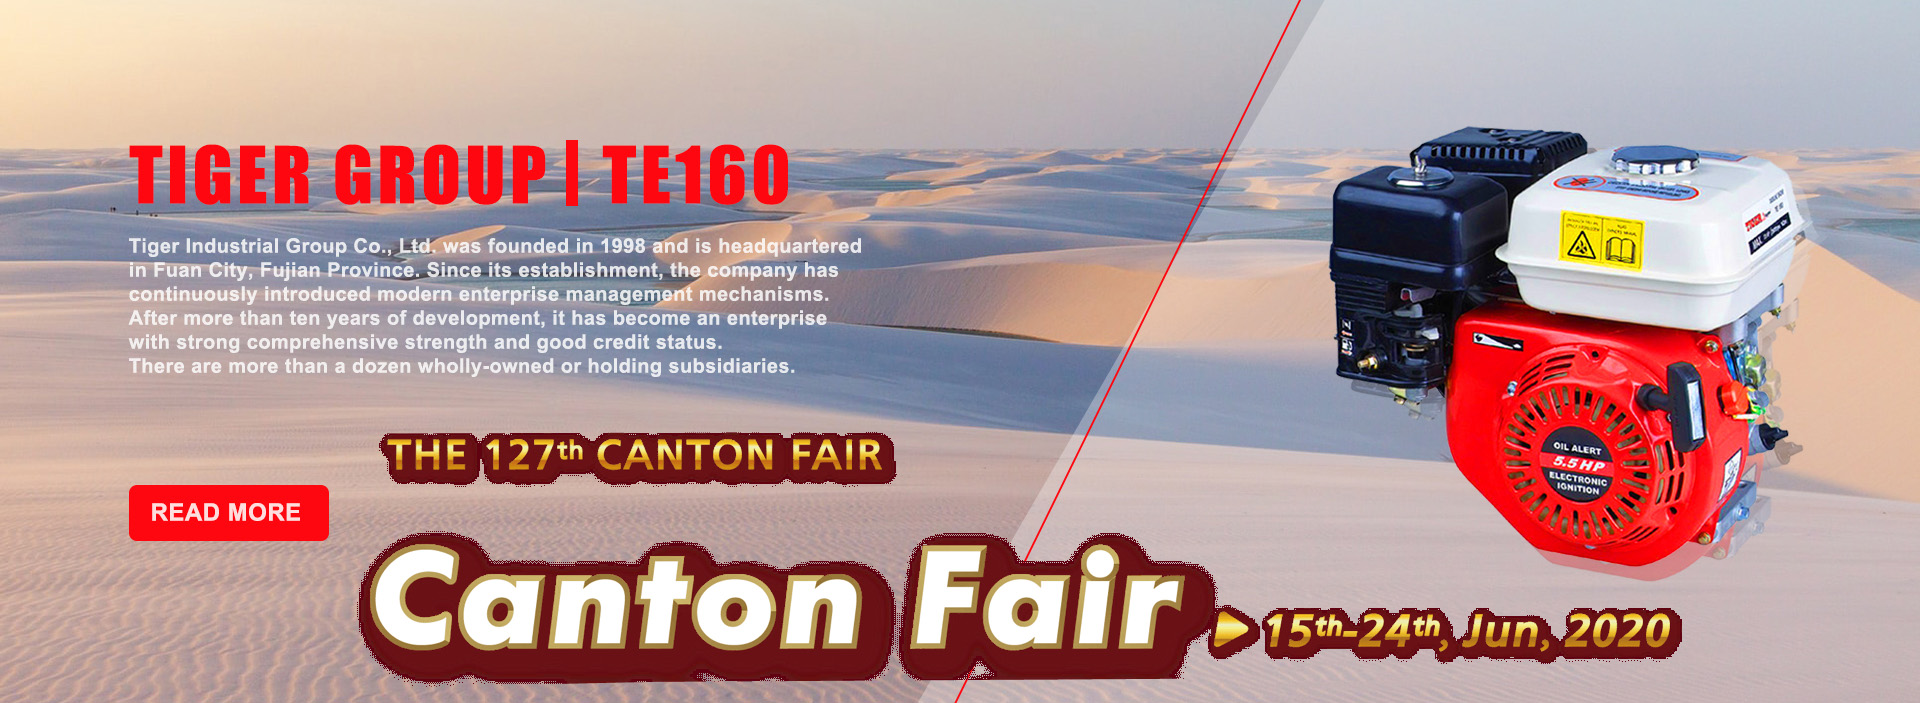 127th Canton Fair scheduled online from June 15 to 24